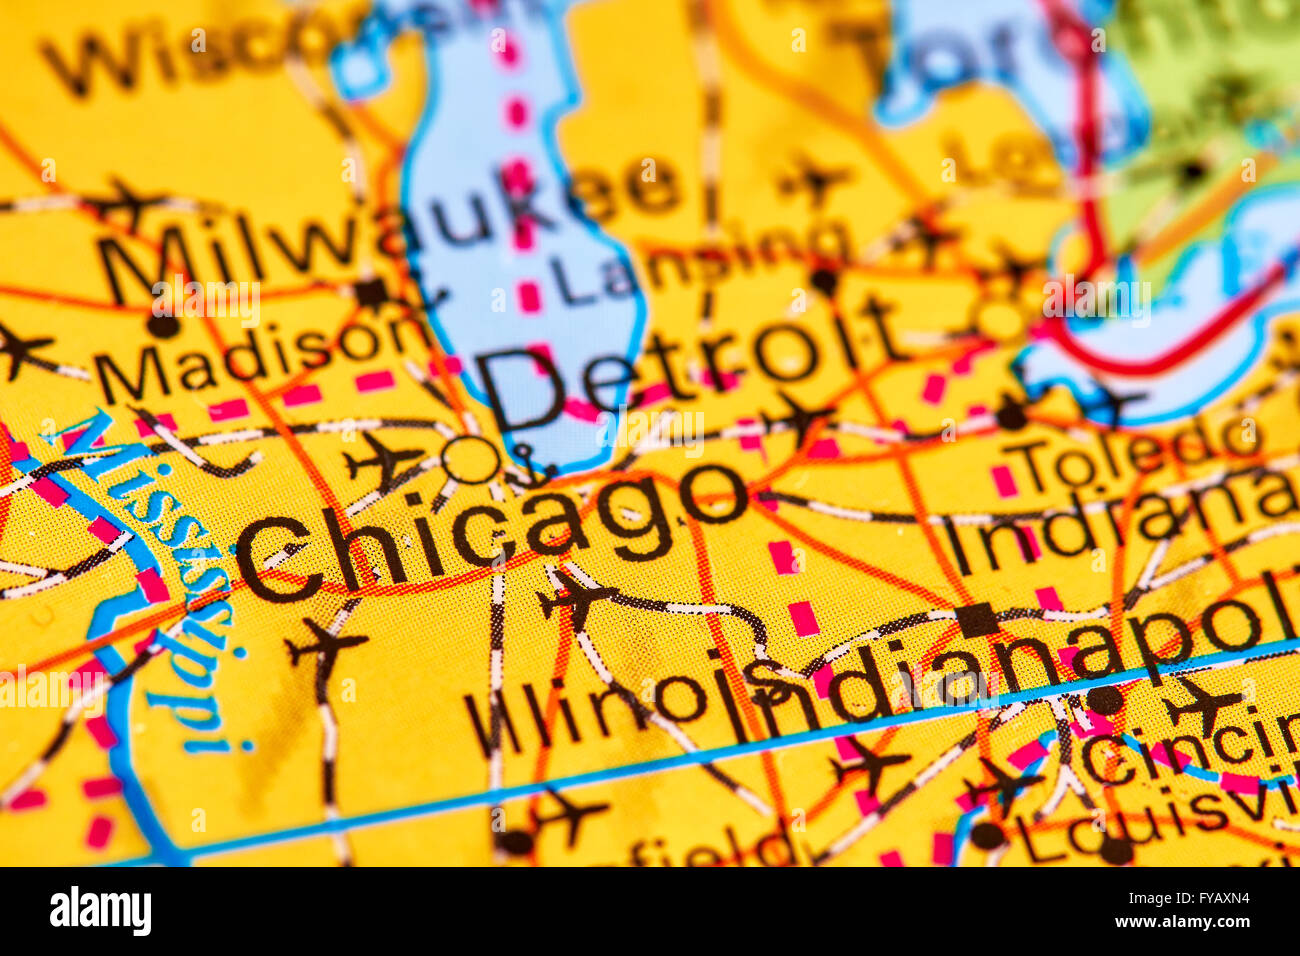 City Map Of Chicago Stock Photos & City Map Of Chicago Stock Images ...